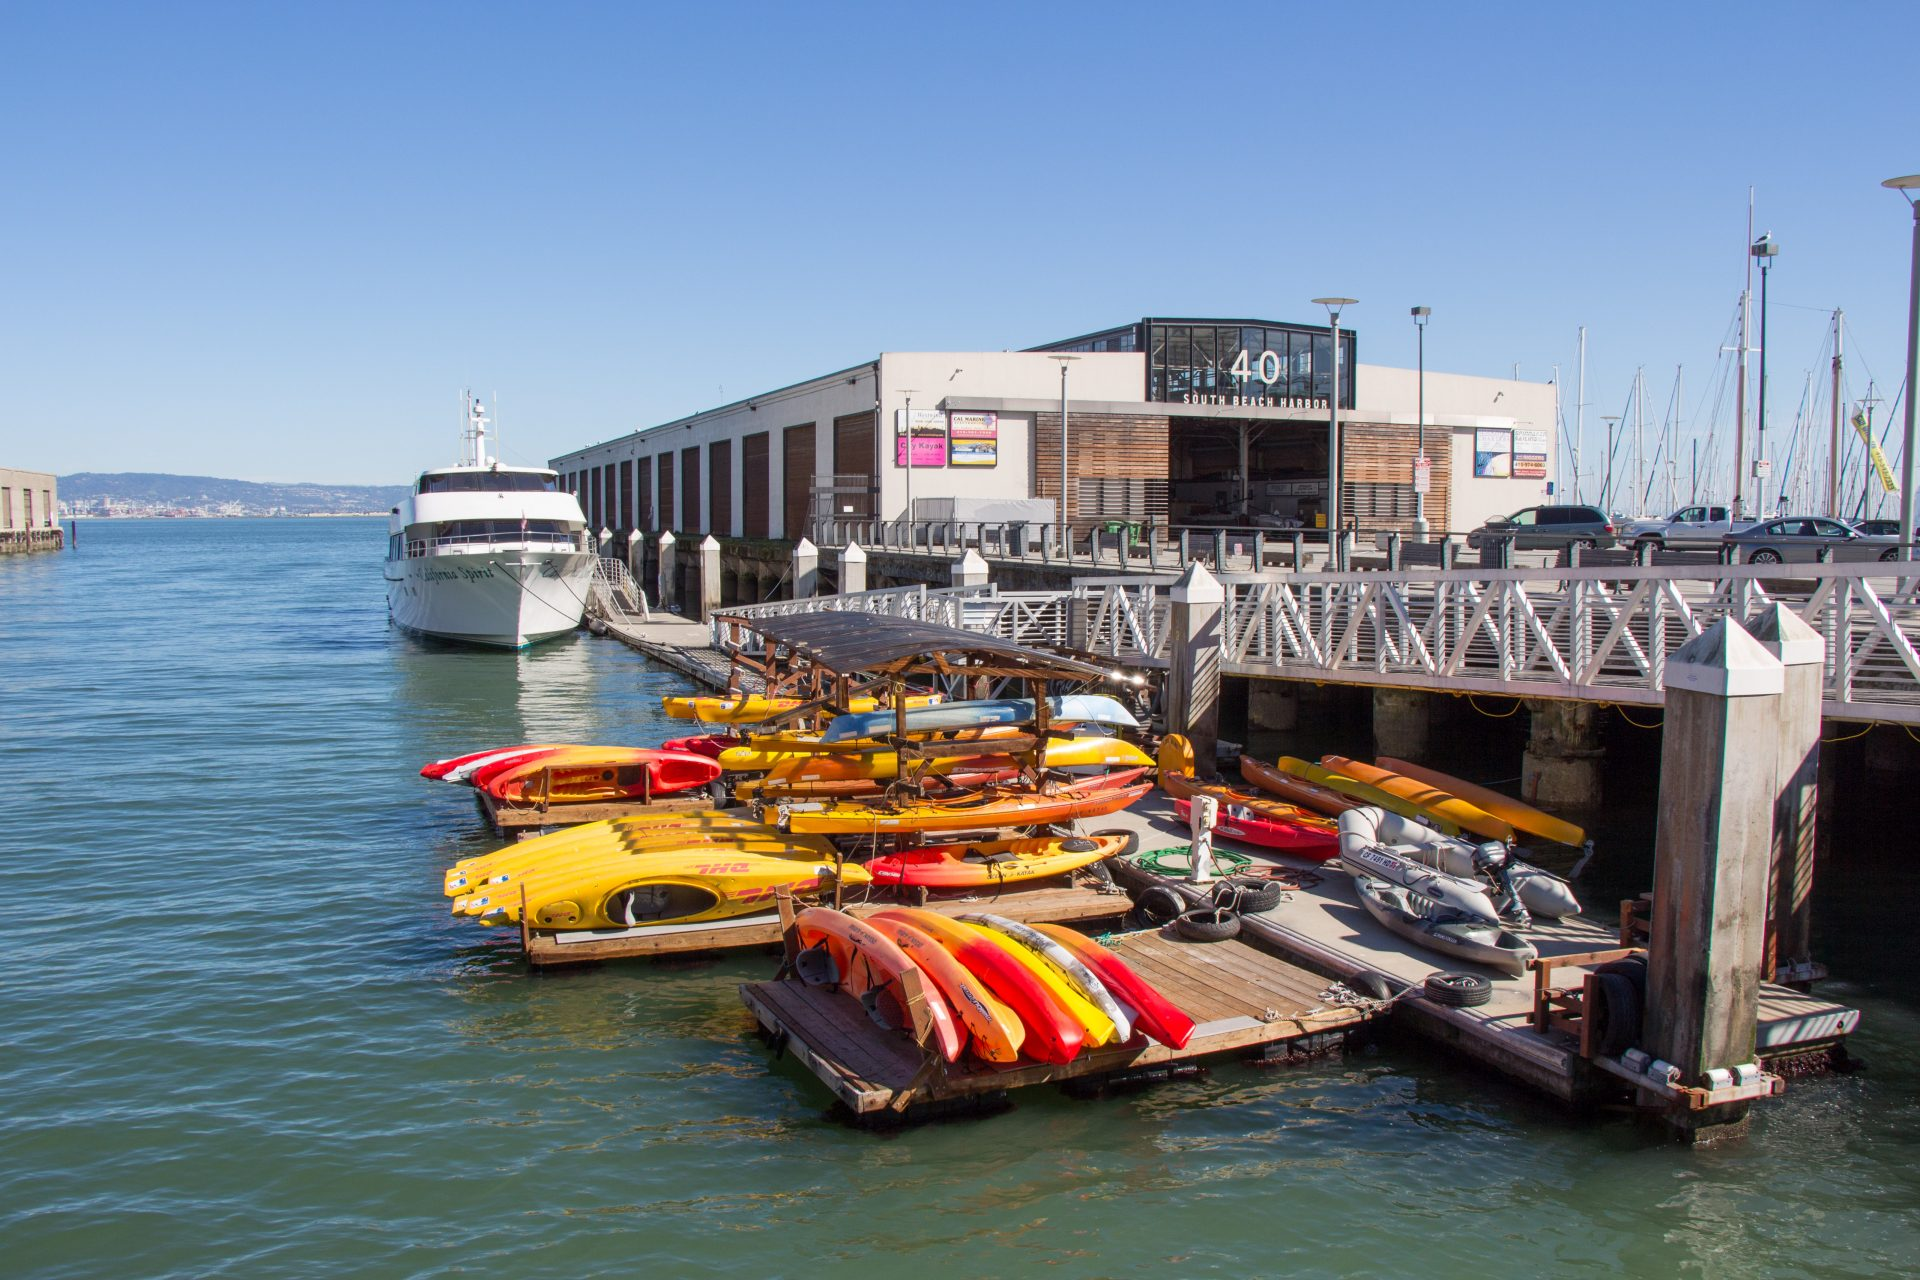 Floating docks with racks full of densely packed kayaks, Pier 40 in distance